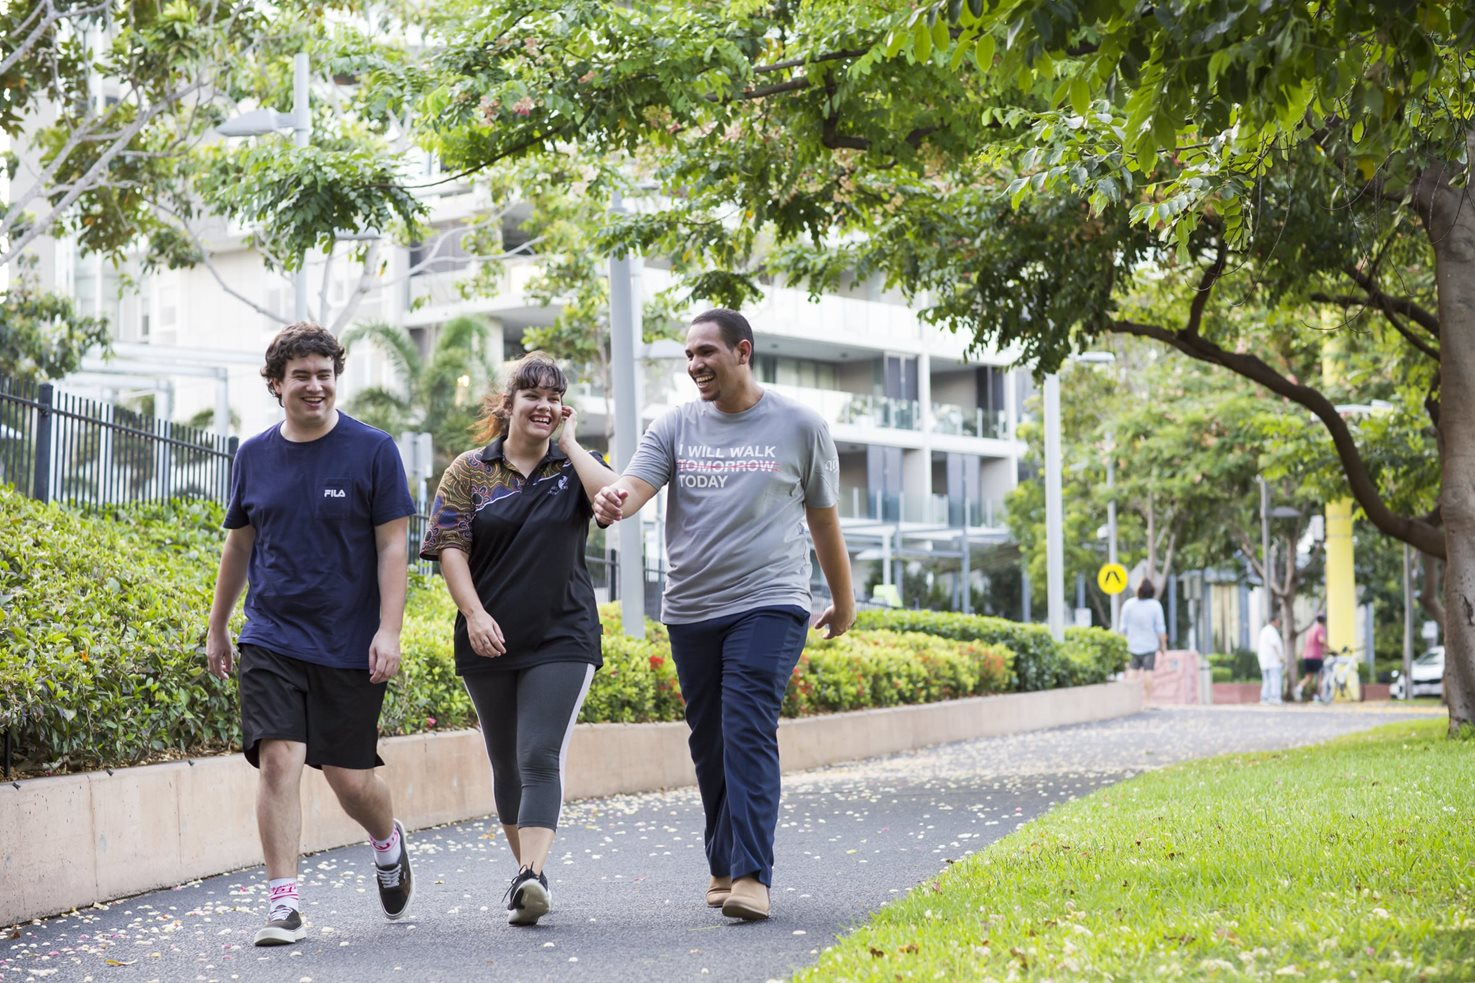 Heart Foundation welcomes funding pledge to support walking program in Tasmania